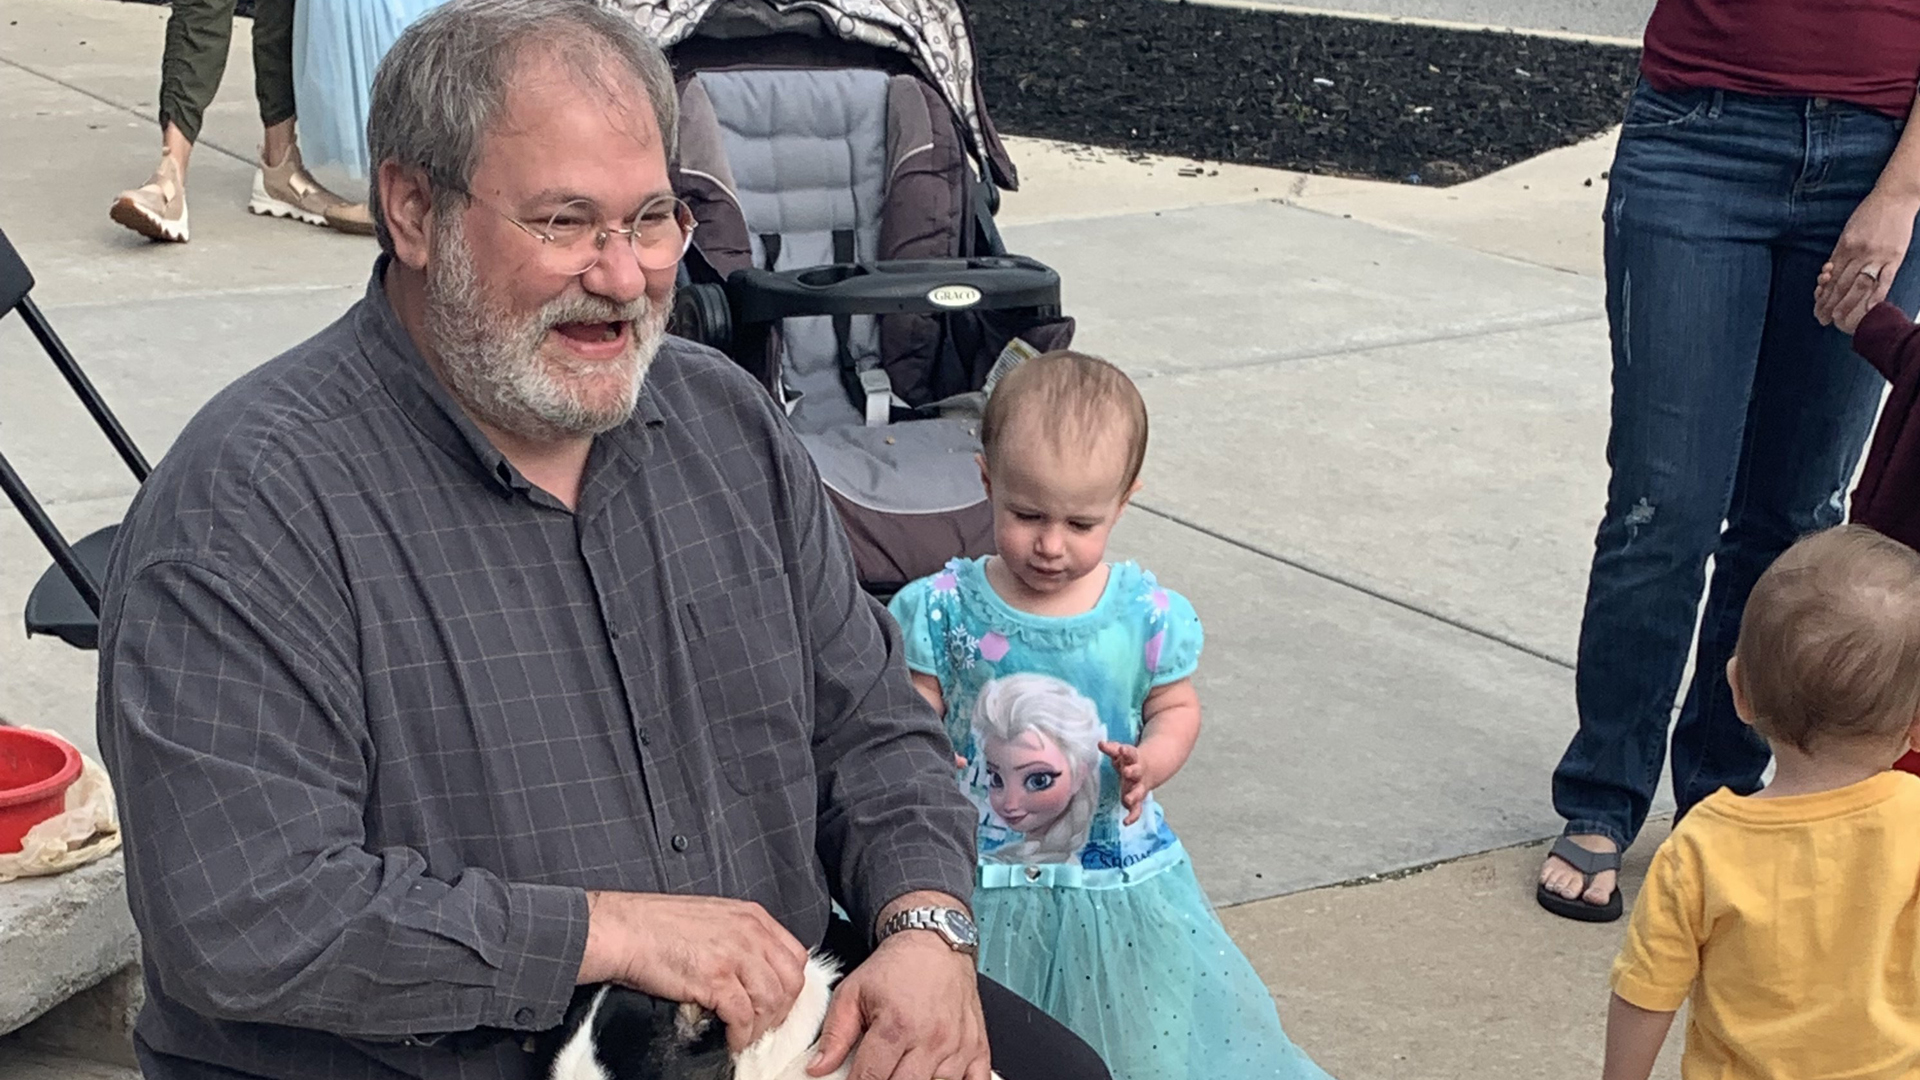 Sal Anello and his dranddaughter Chloe are seen in a photo released by the Wiegand Family and distributed by CNN.